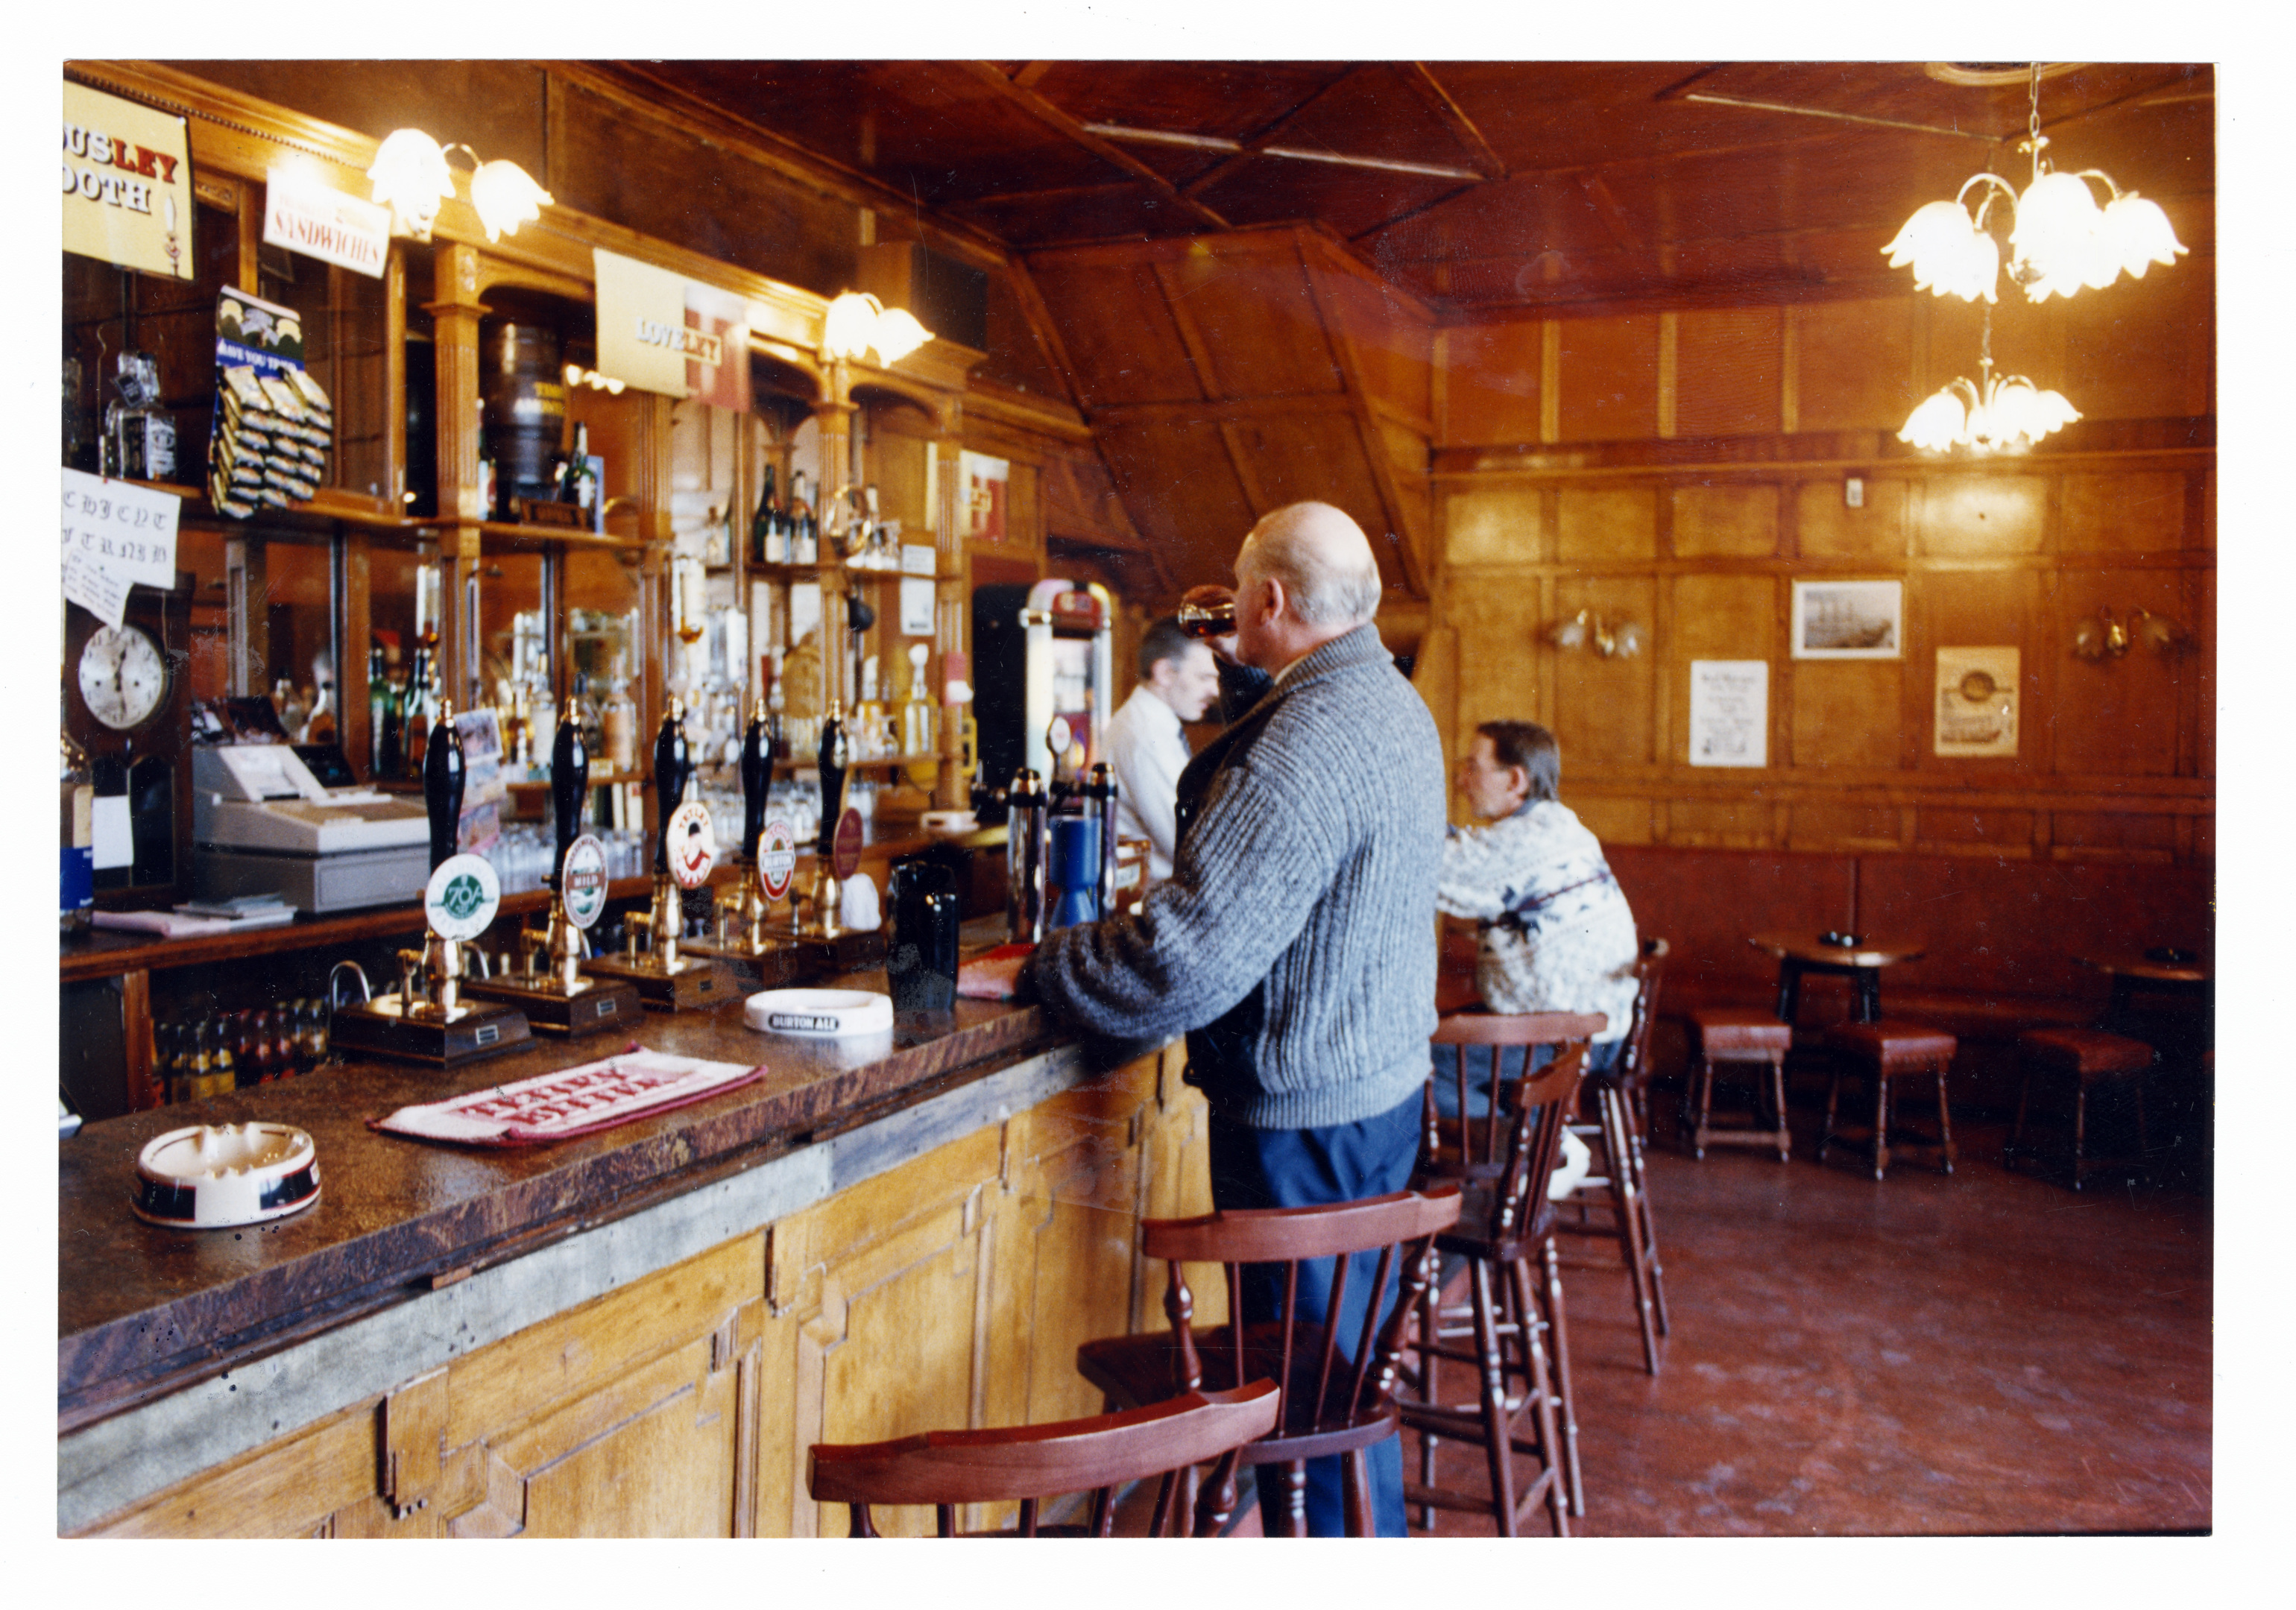 The bar of the Market Arms, Hadden Street, with oak panelling uncovered during renovation work.